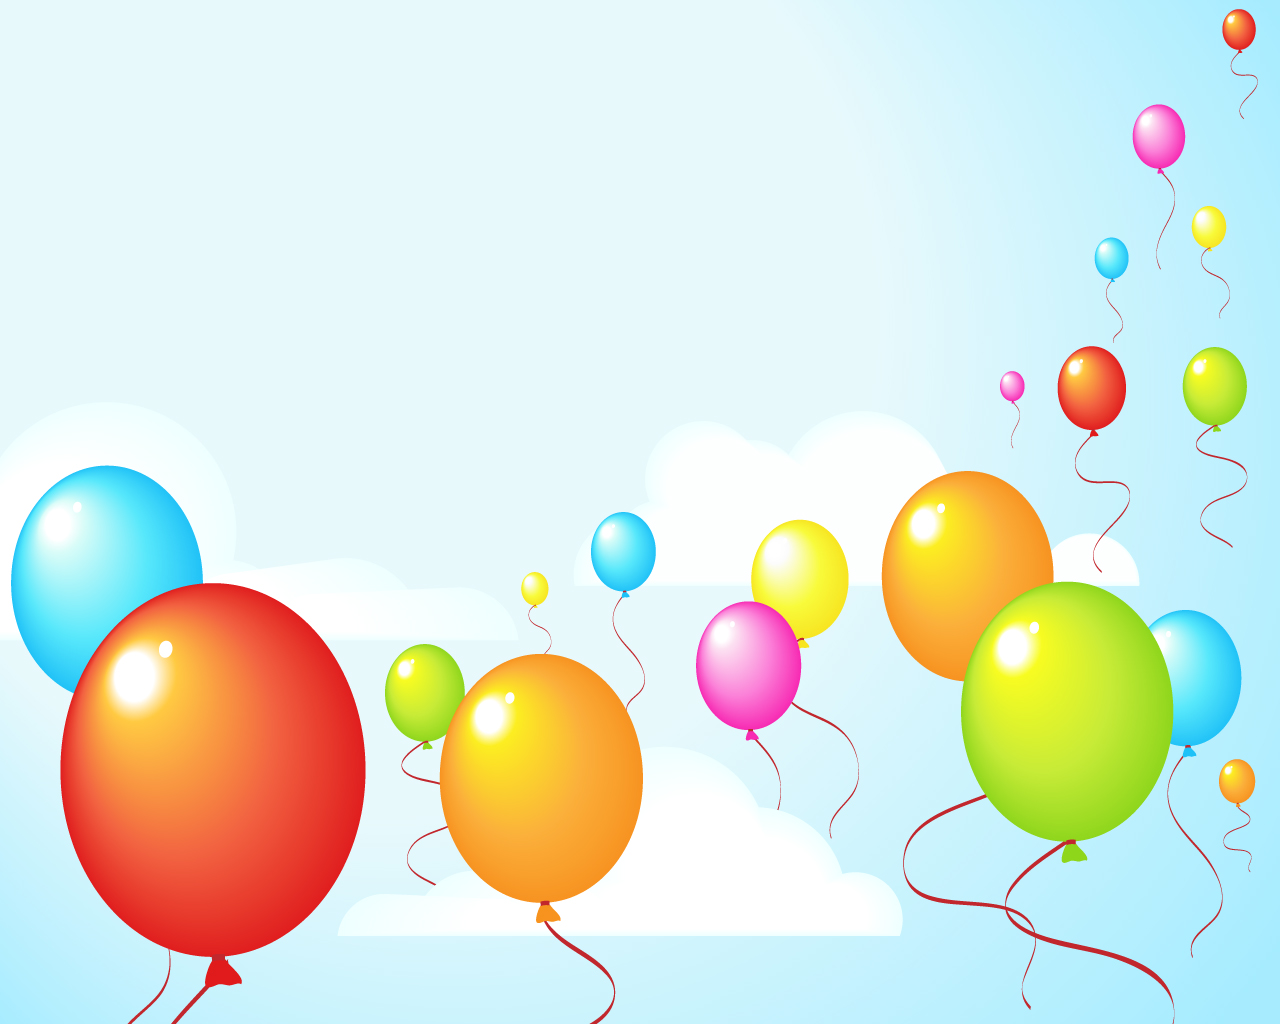 45 free balloon images free cliparts that you can download to you ...